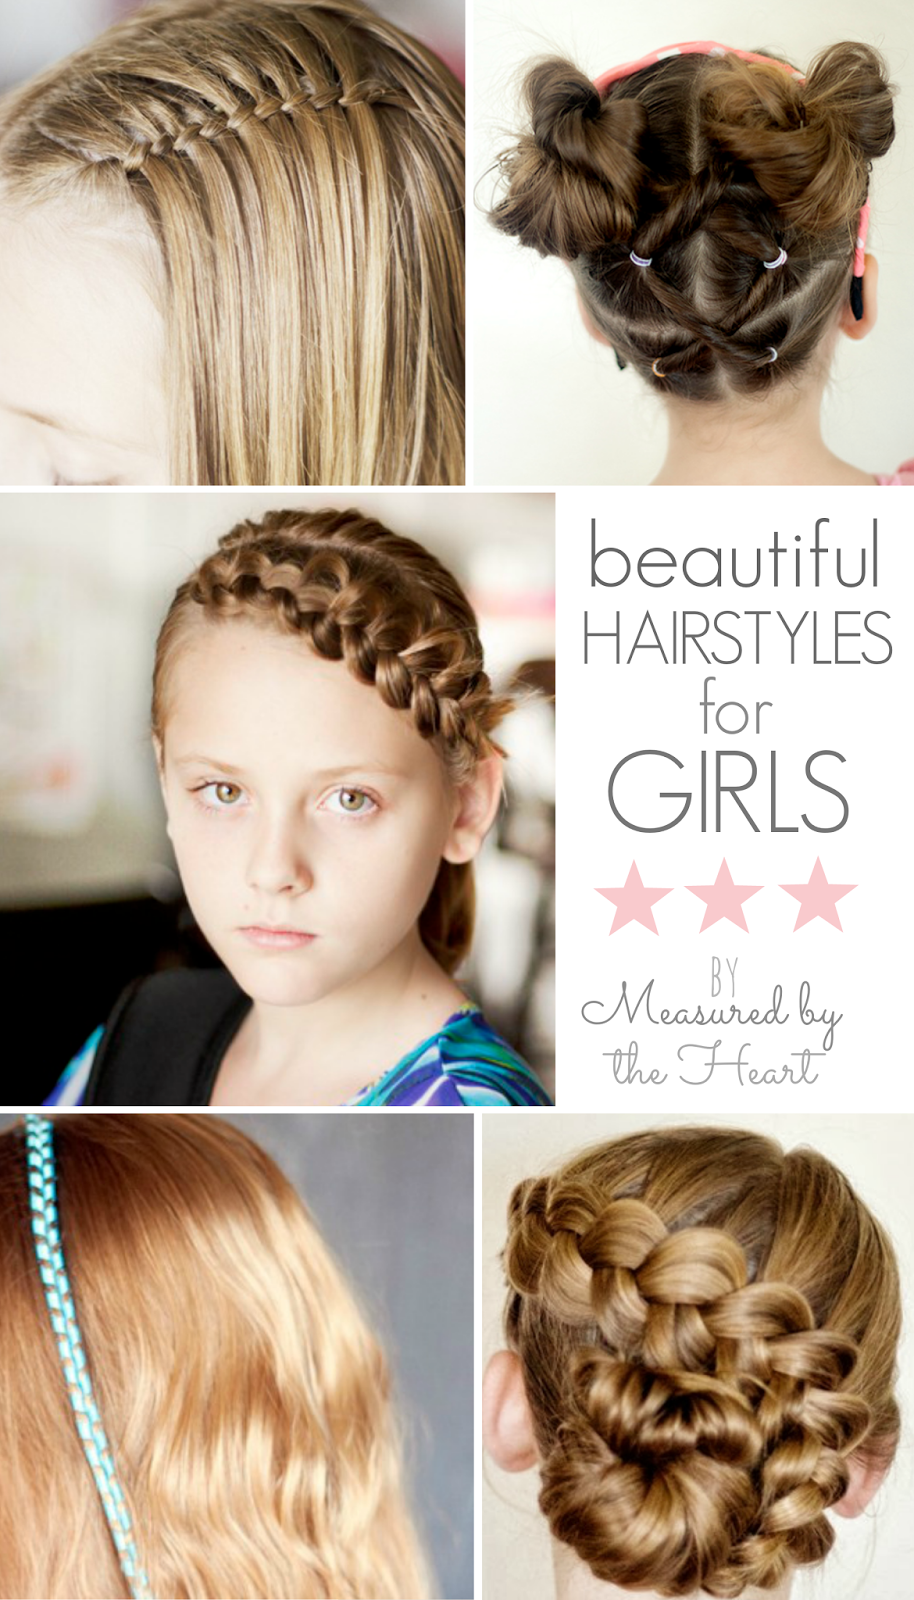 beautiful hairstyles for girls | hair and makeup | hair